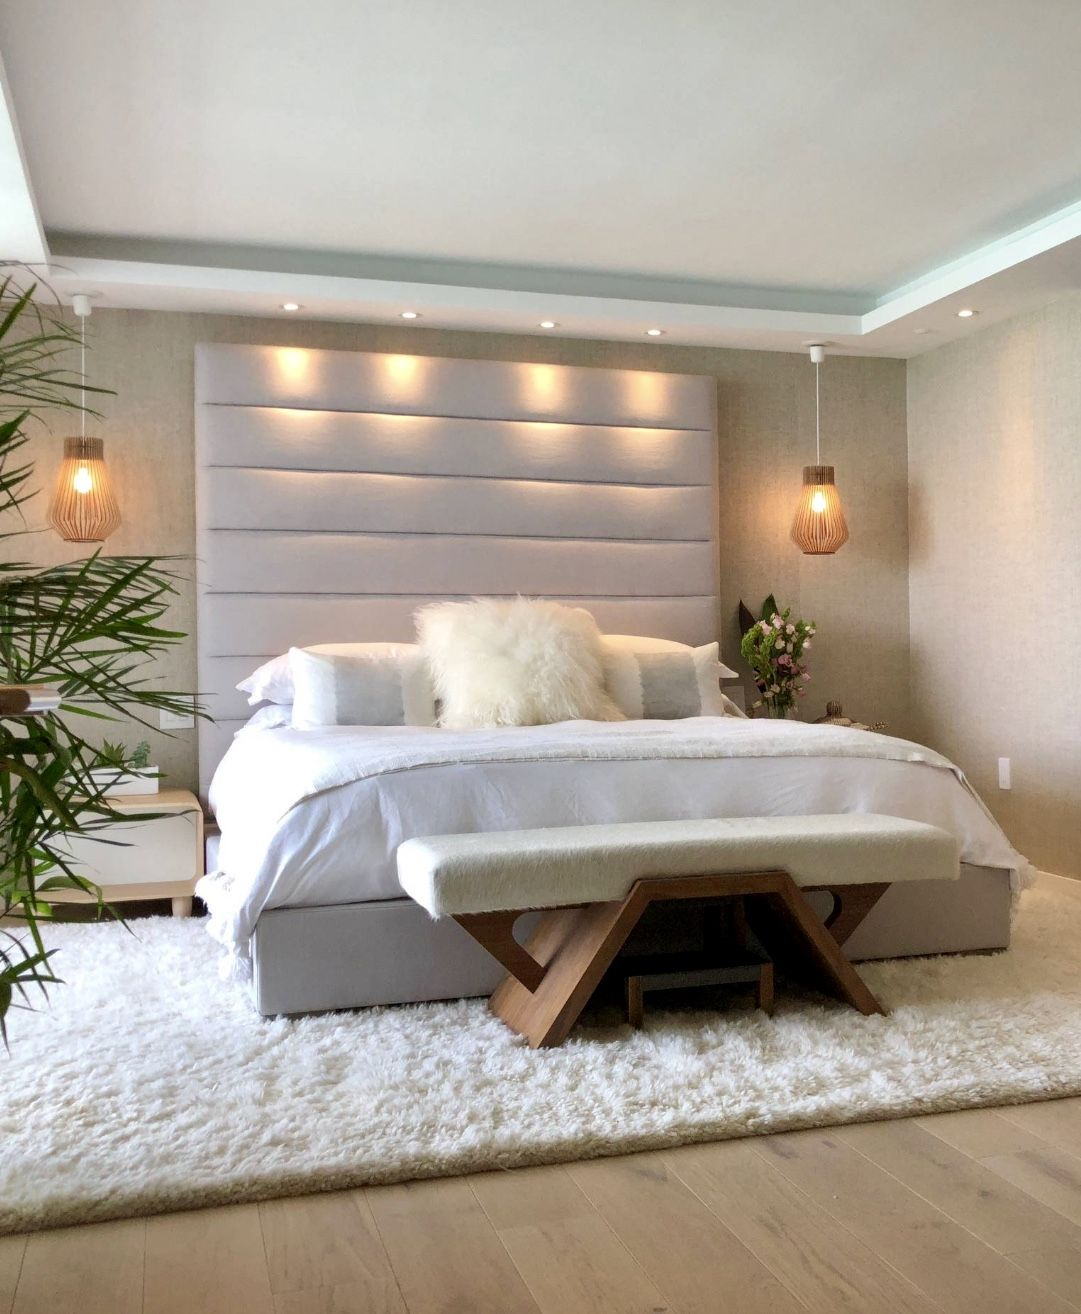 Modern Beige Bedroom Luxury Decor Luxurious Bedrooms Modern Bedroom Design Master Bedrooms Decor